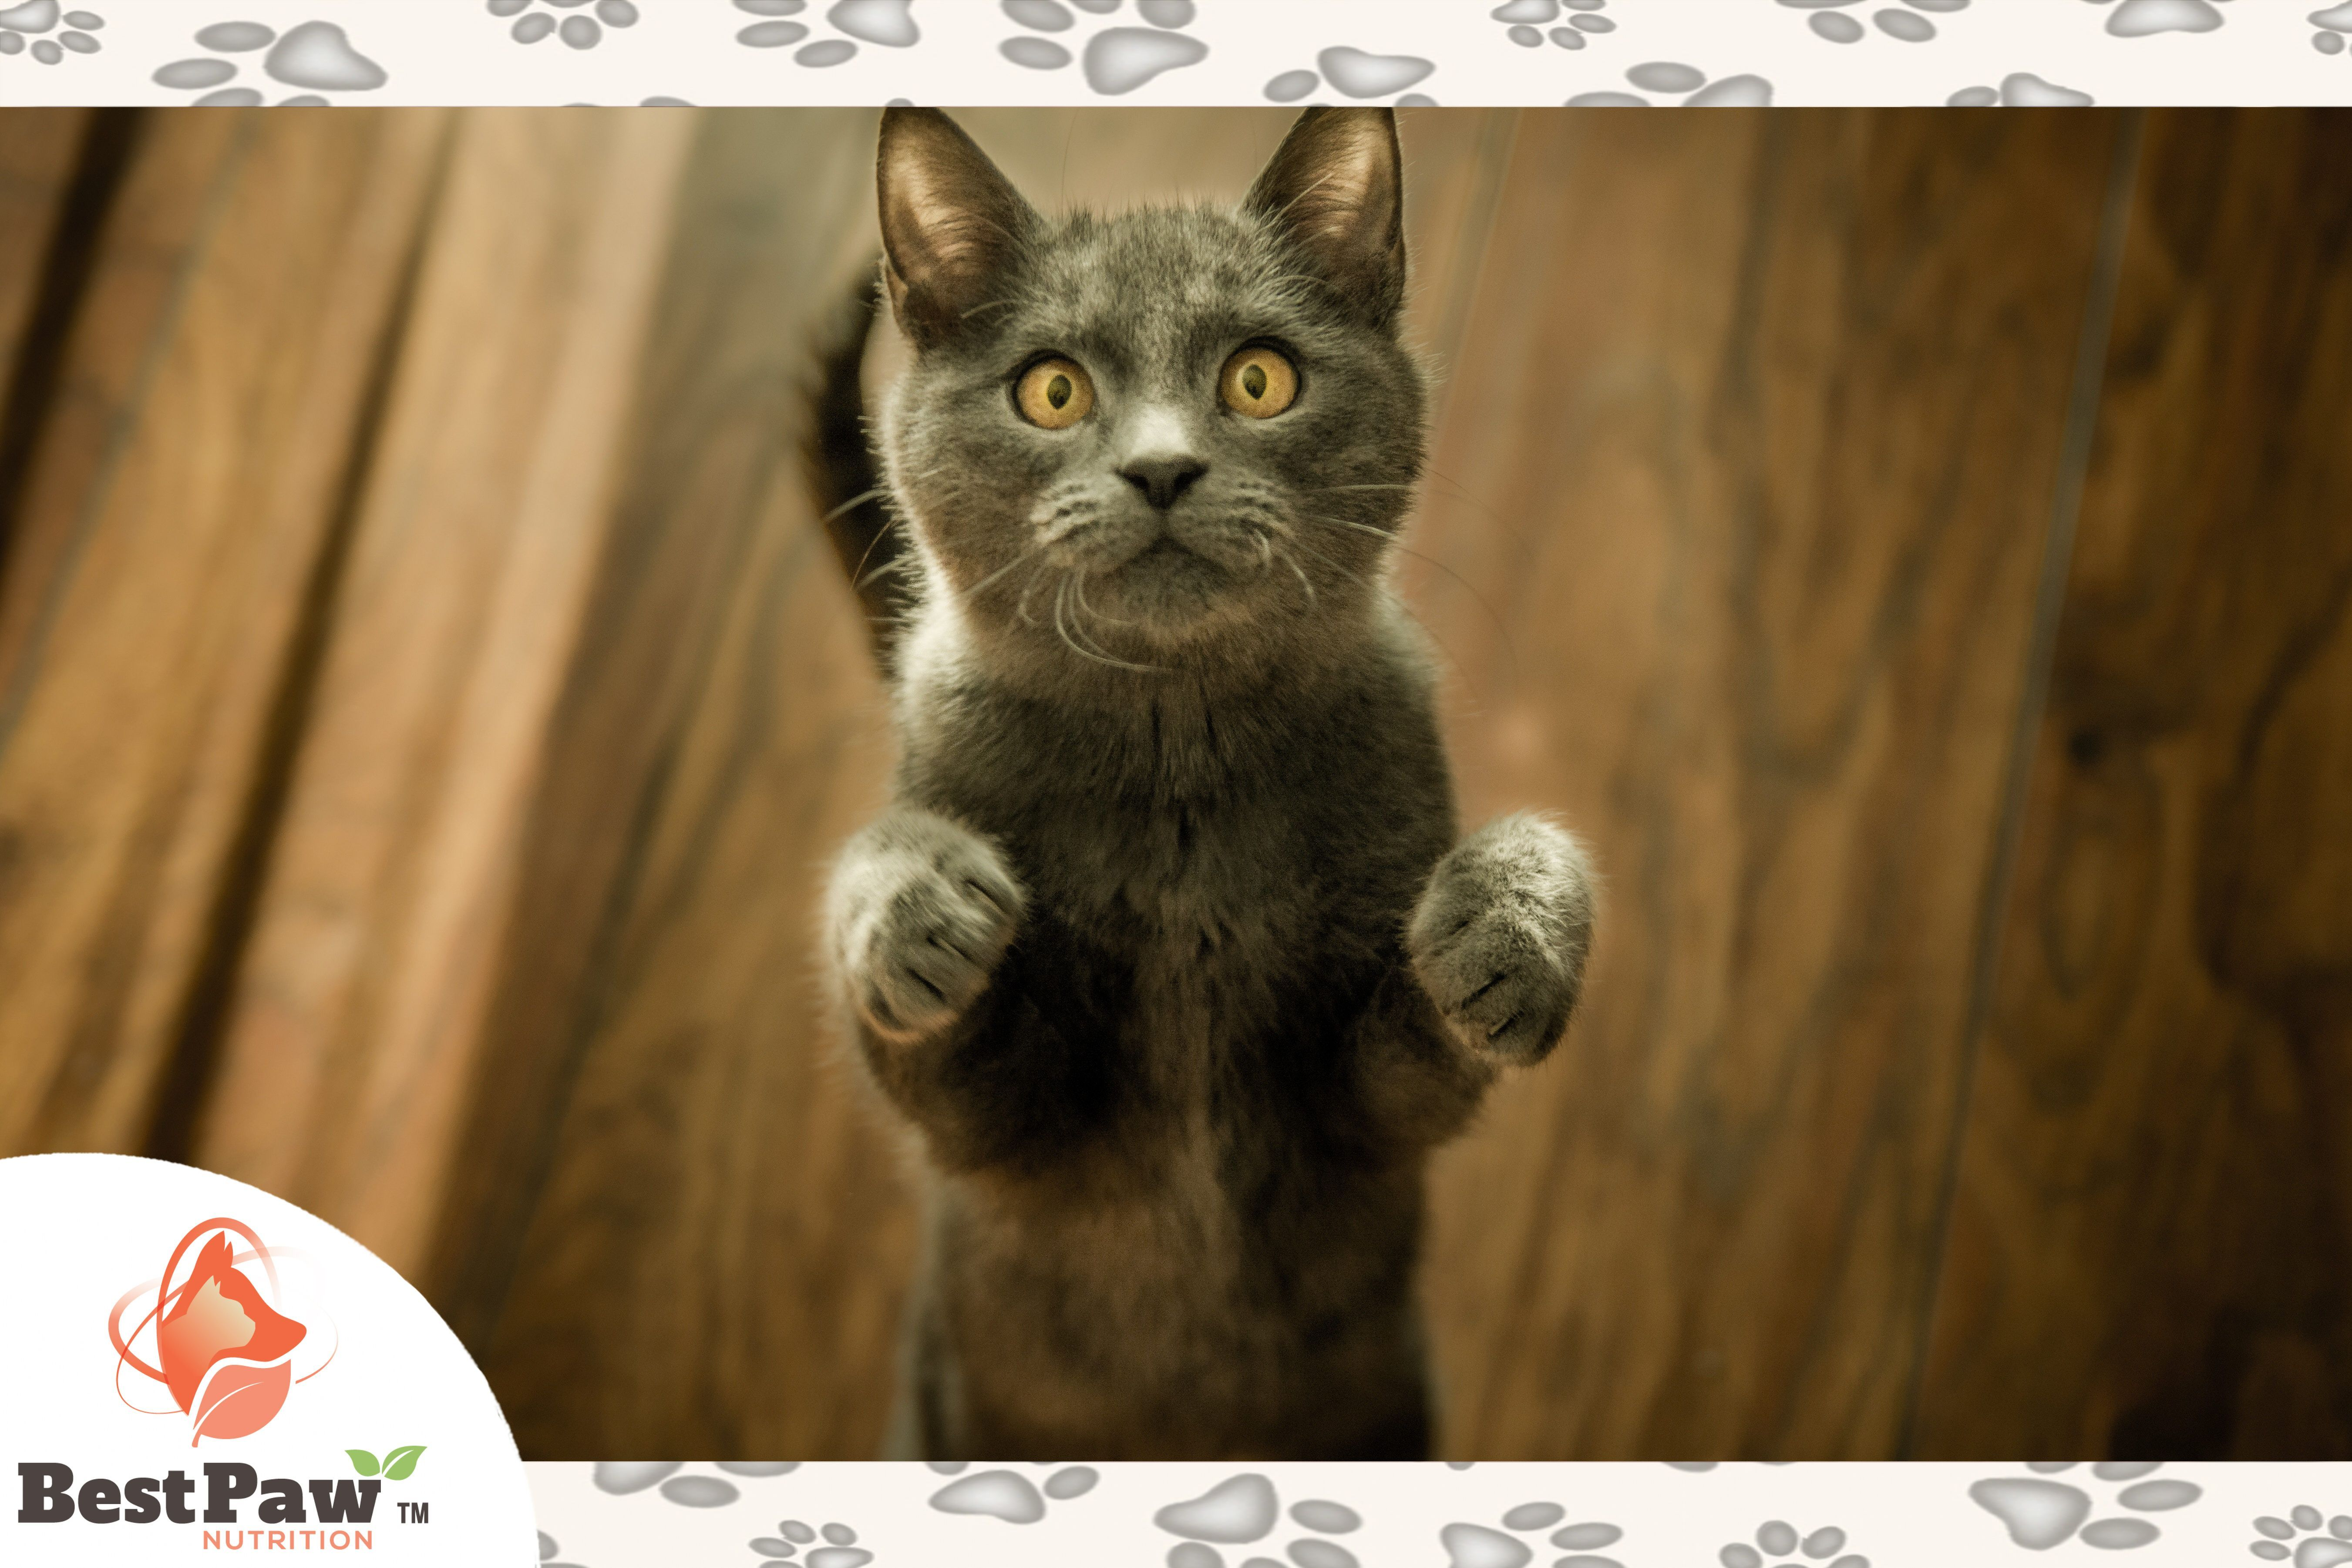 With Such An Adorable Face It S Impossible Not To Just Scoop This Kitty Right Up And Give It All The Love Lovecats Ad Funny Cats Cat Lovers Cat Stands